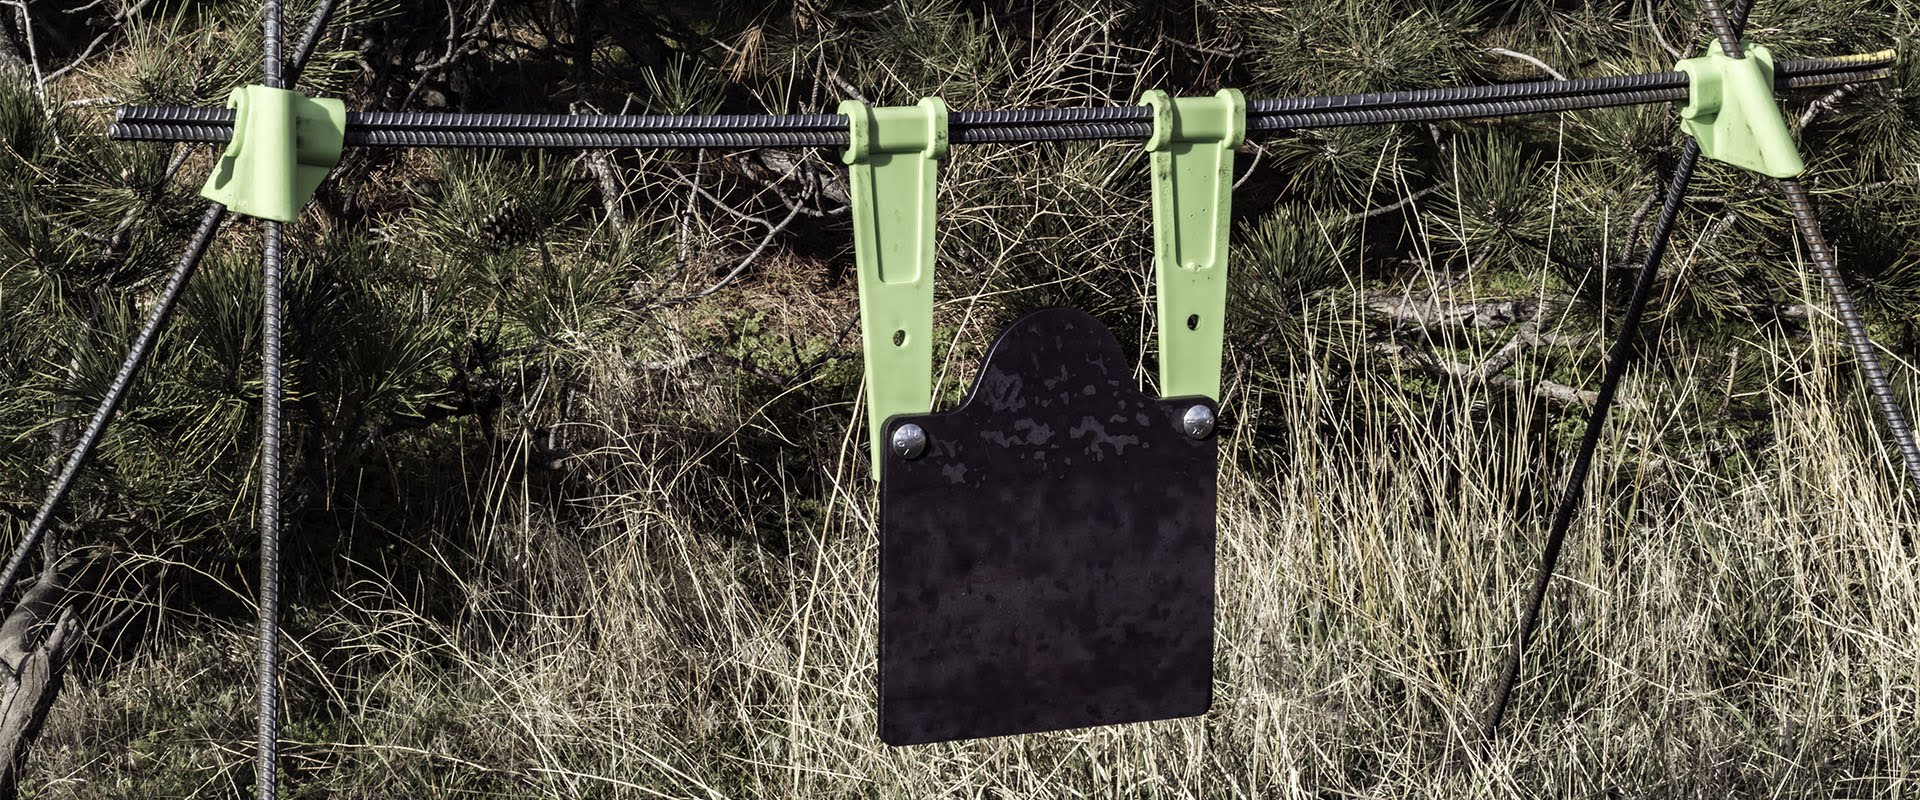 The Last Stand - DIY Target Stand Kit